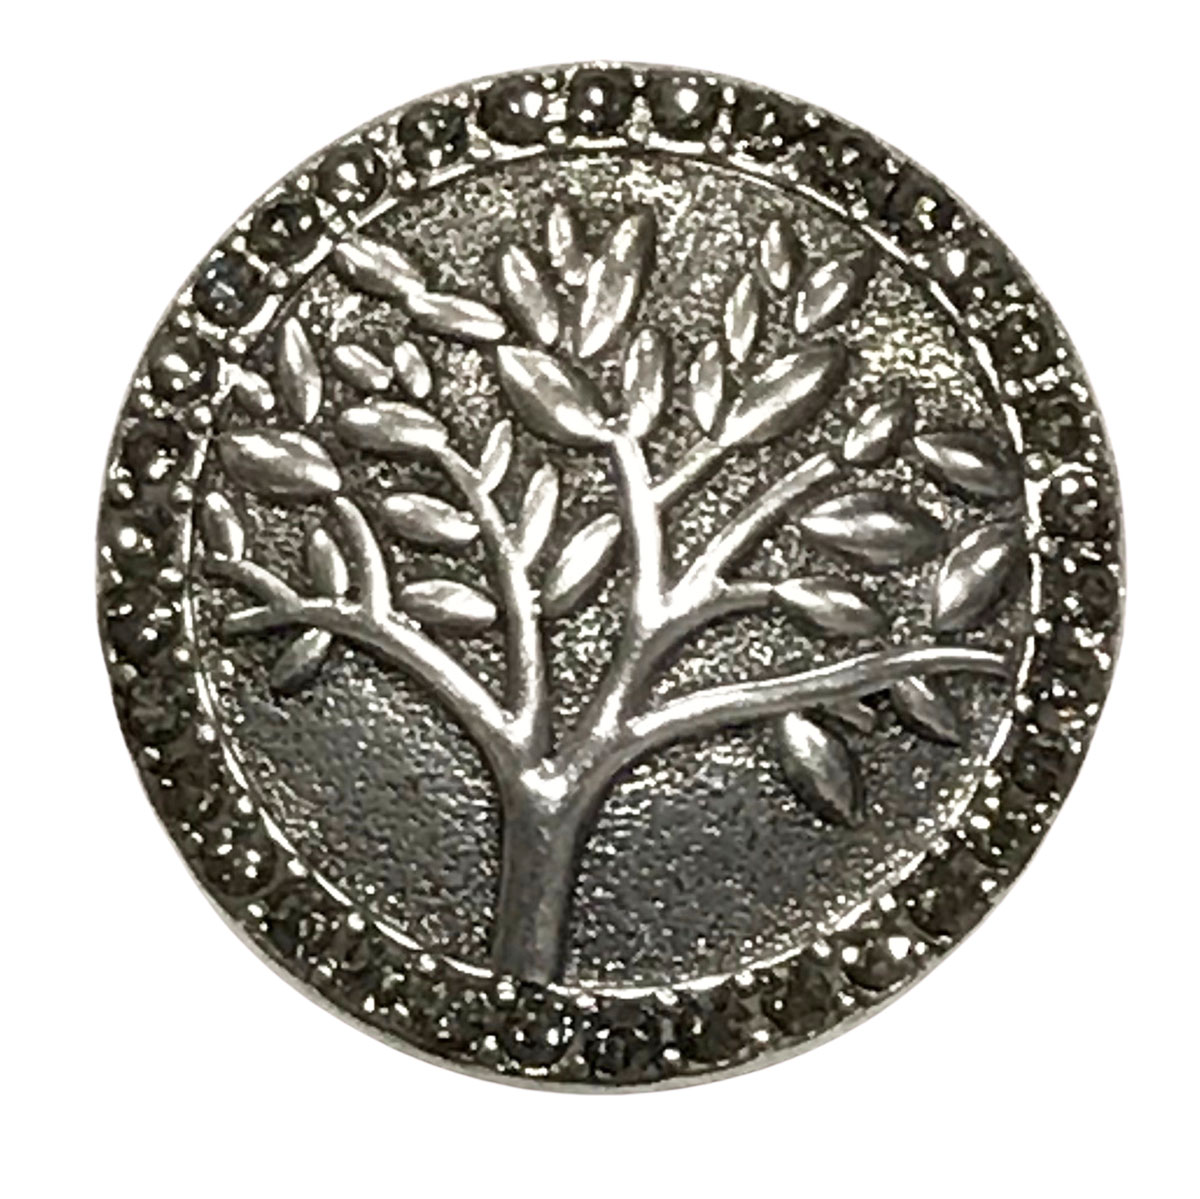 Magnetic Brooches - Artful Design - Plain Back - #593 Tree with Hematite Circle Magnetic Brooch